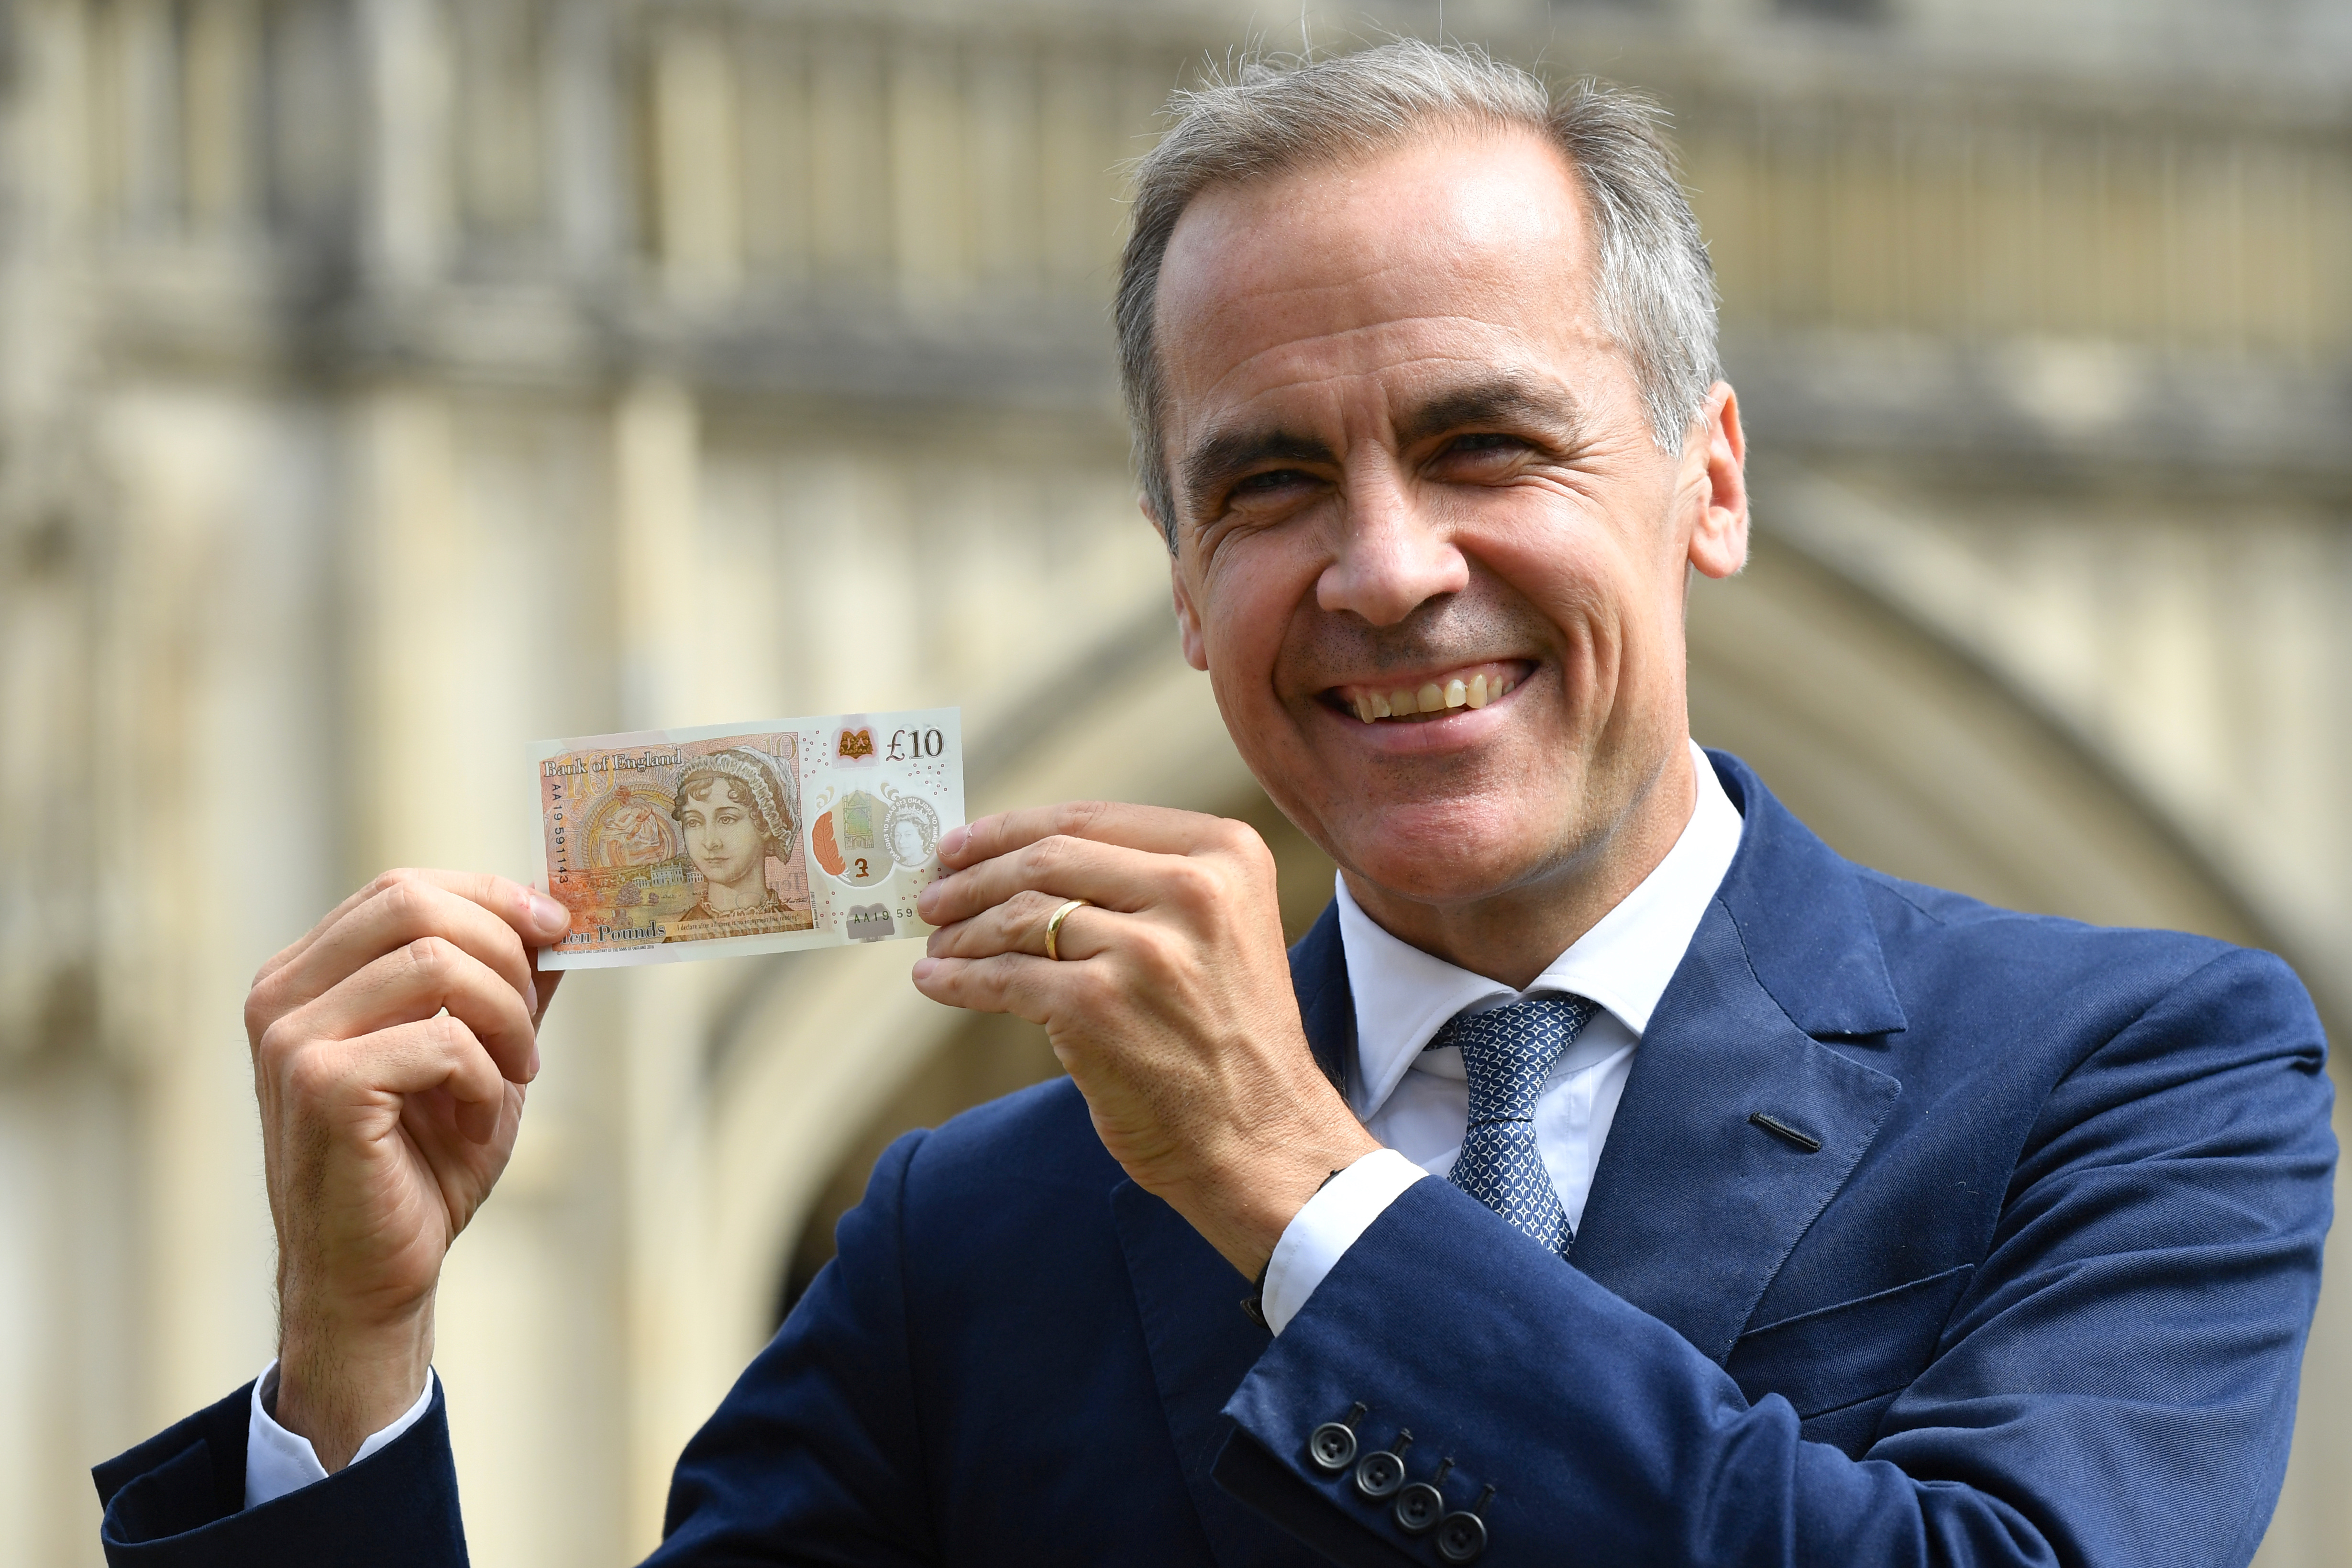 Mark Carney of the Bank of England holds up a banknote